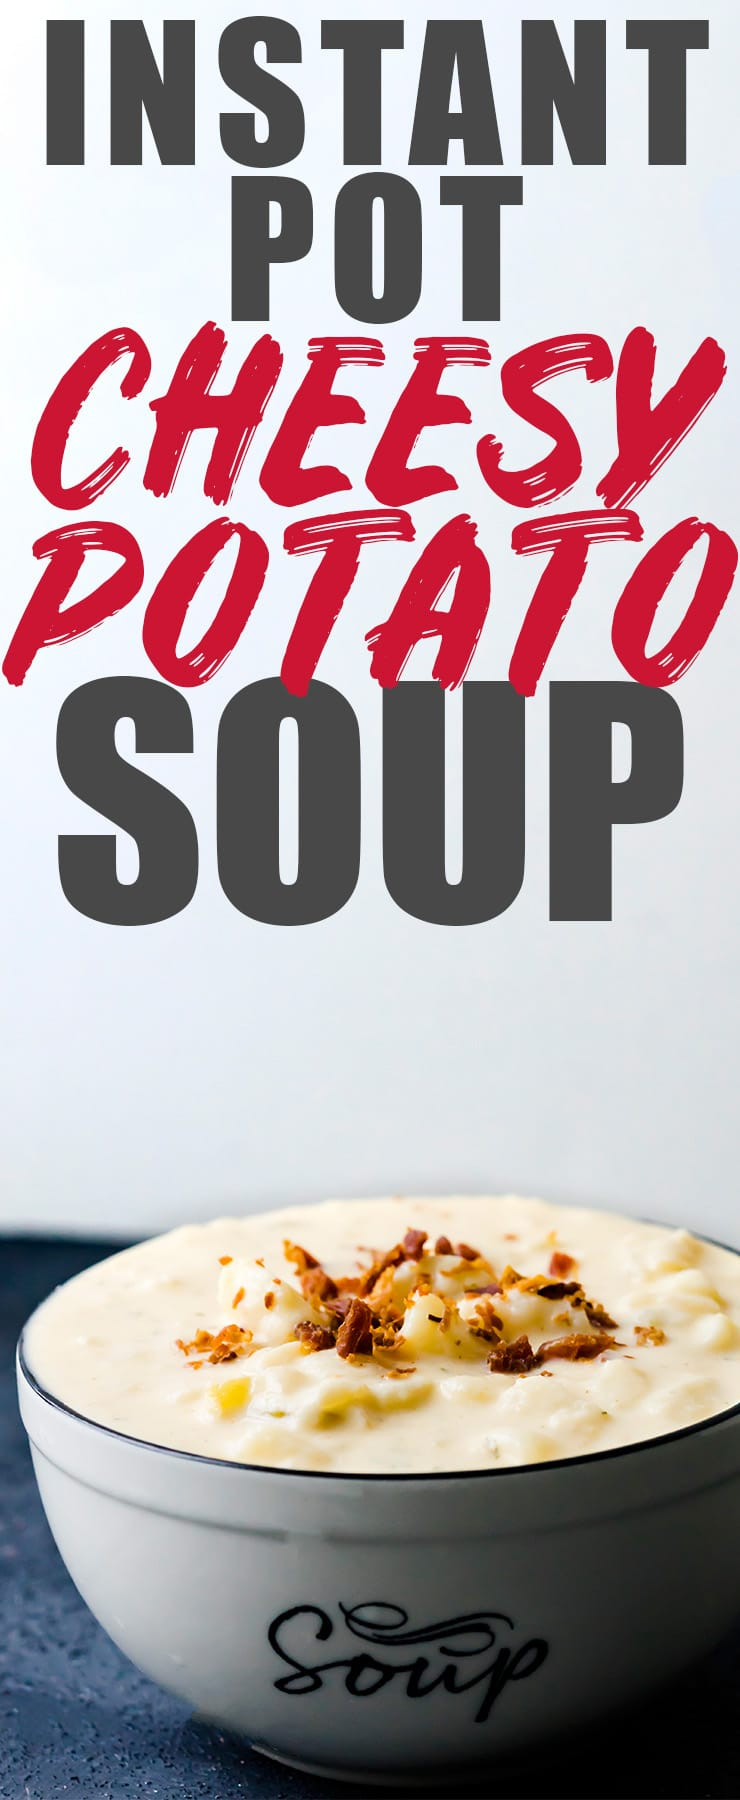 You guys have to try this Instant Pot Cheesy Potato Soup! Top it with a little bit of bacon and you have an easy, cheesy, and creamy soup done in only 7 minutes! #potato #soup #cheesy